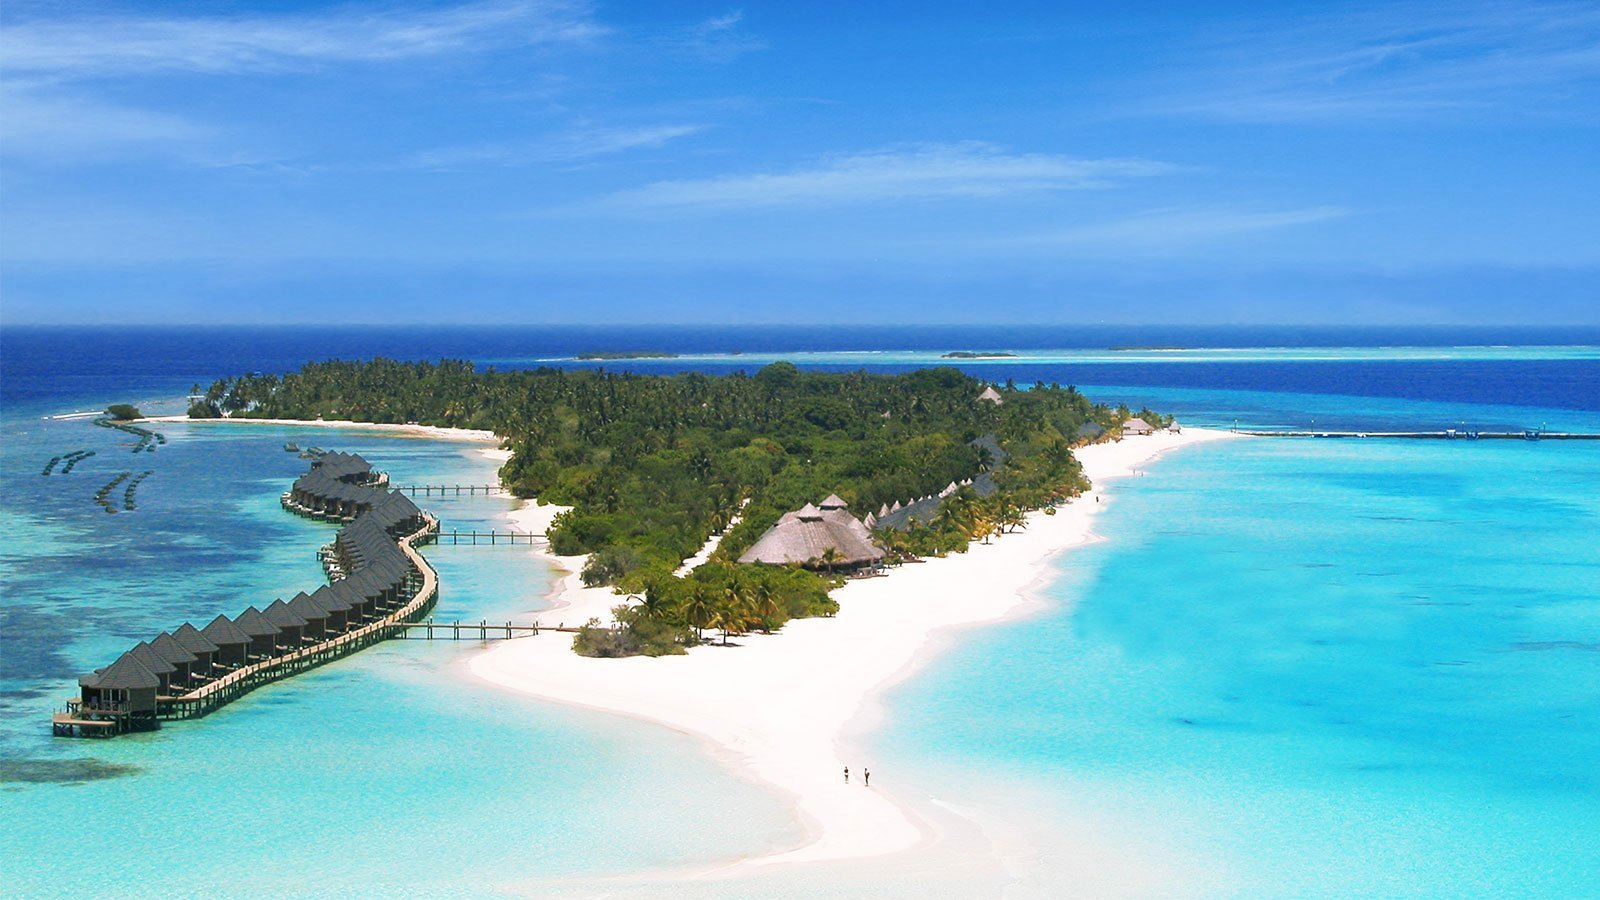 Maldives Resorts Kuredu Is A Top Rated And Popular Resort